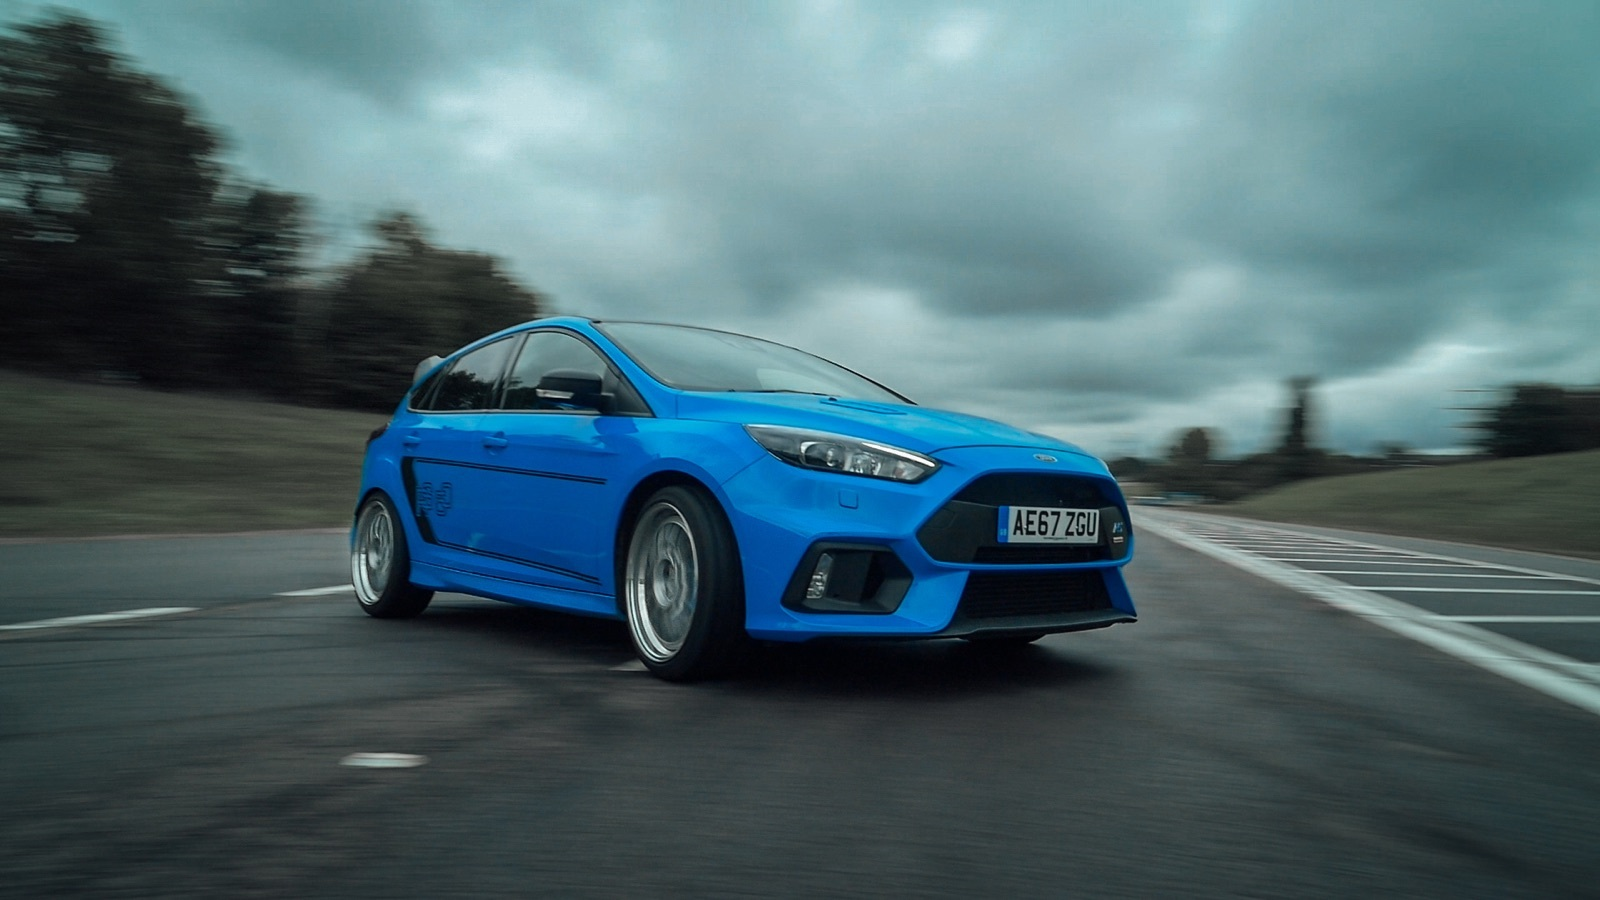 Focus RS, the Stunt Drivers Car of Choice